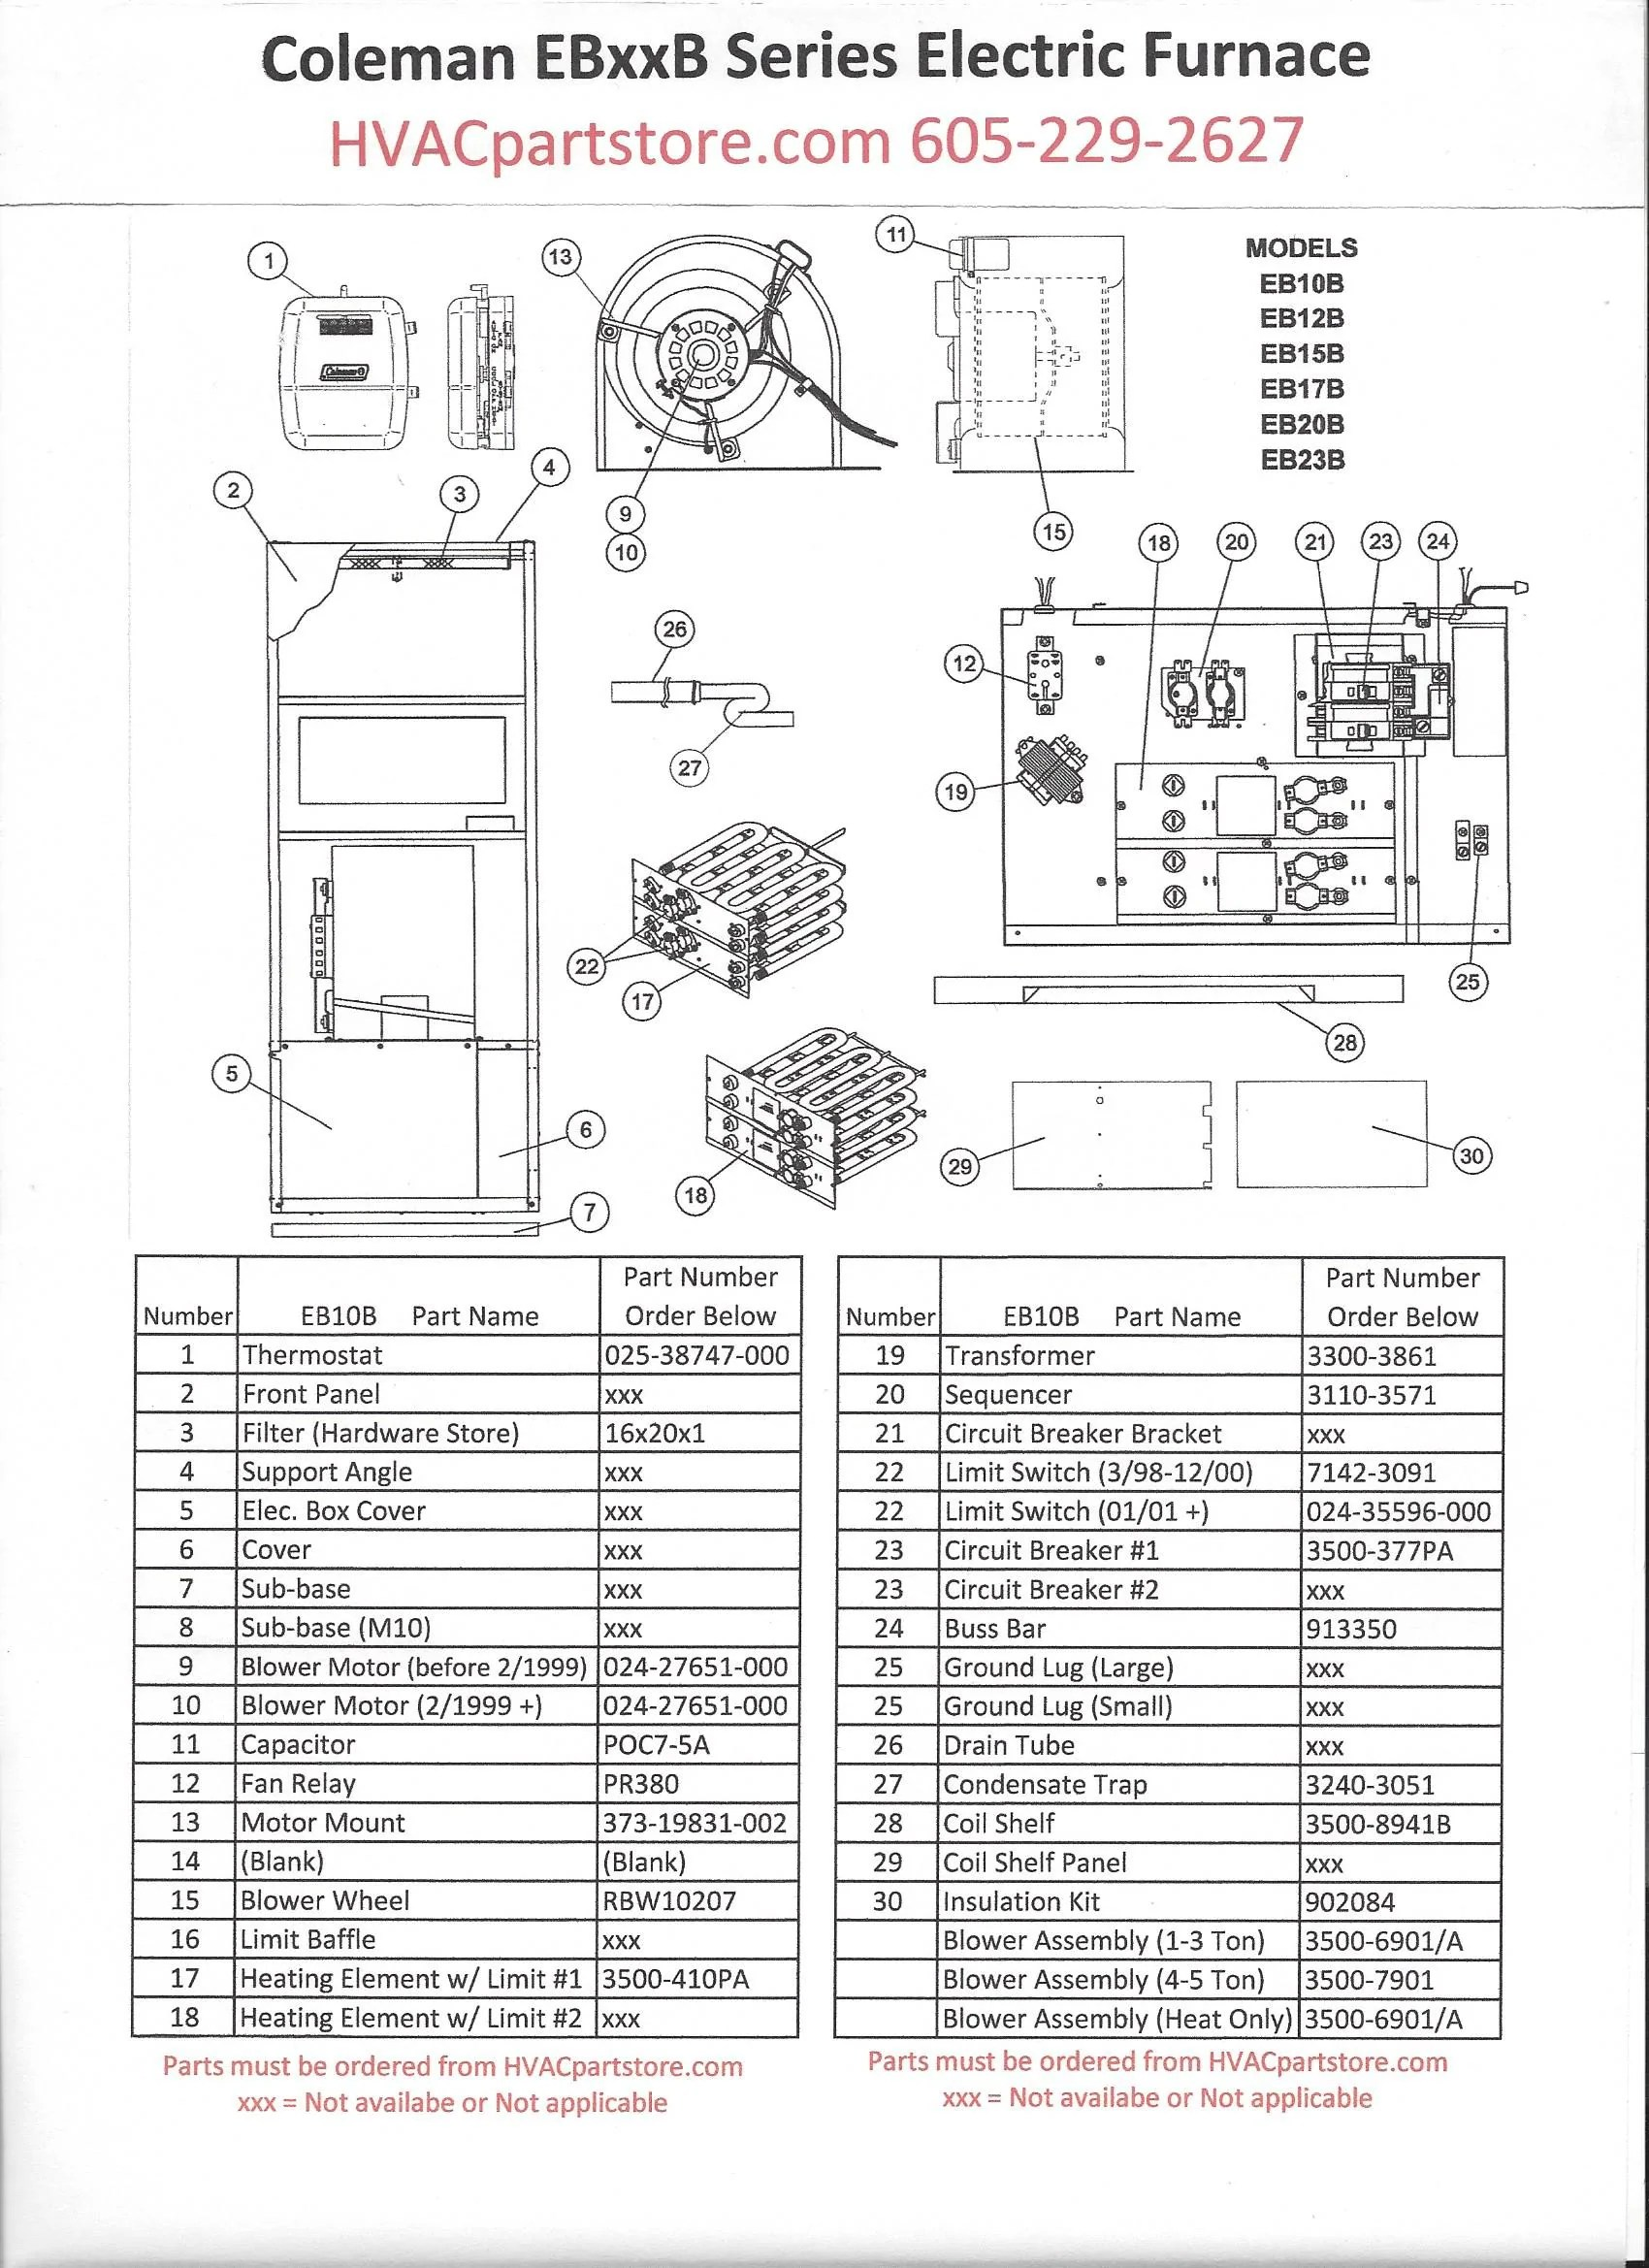 coleman pigtail wiring diagram wiring diagram world coleman pigtail wiring diagram [ 1700 x 2338 Pixel ]